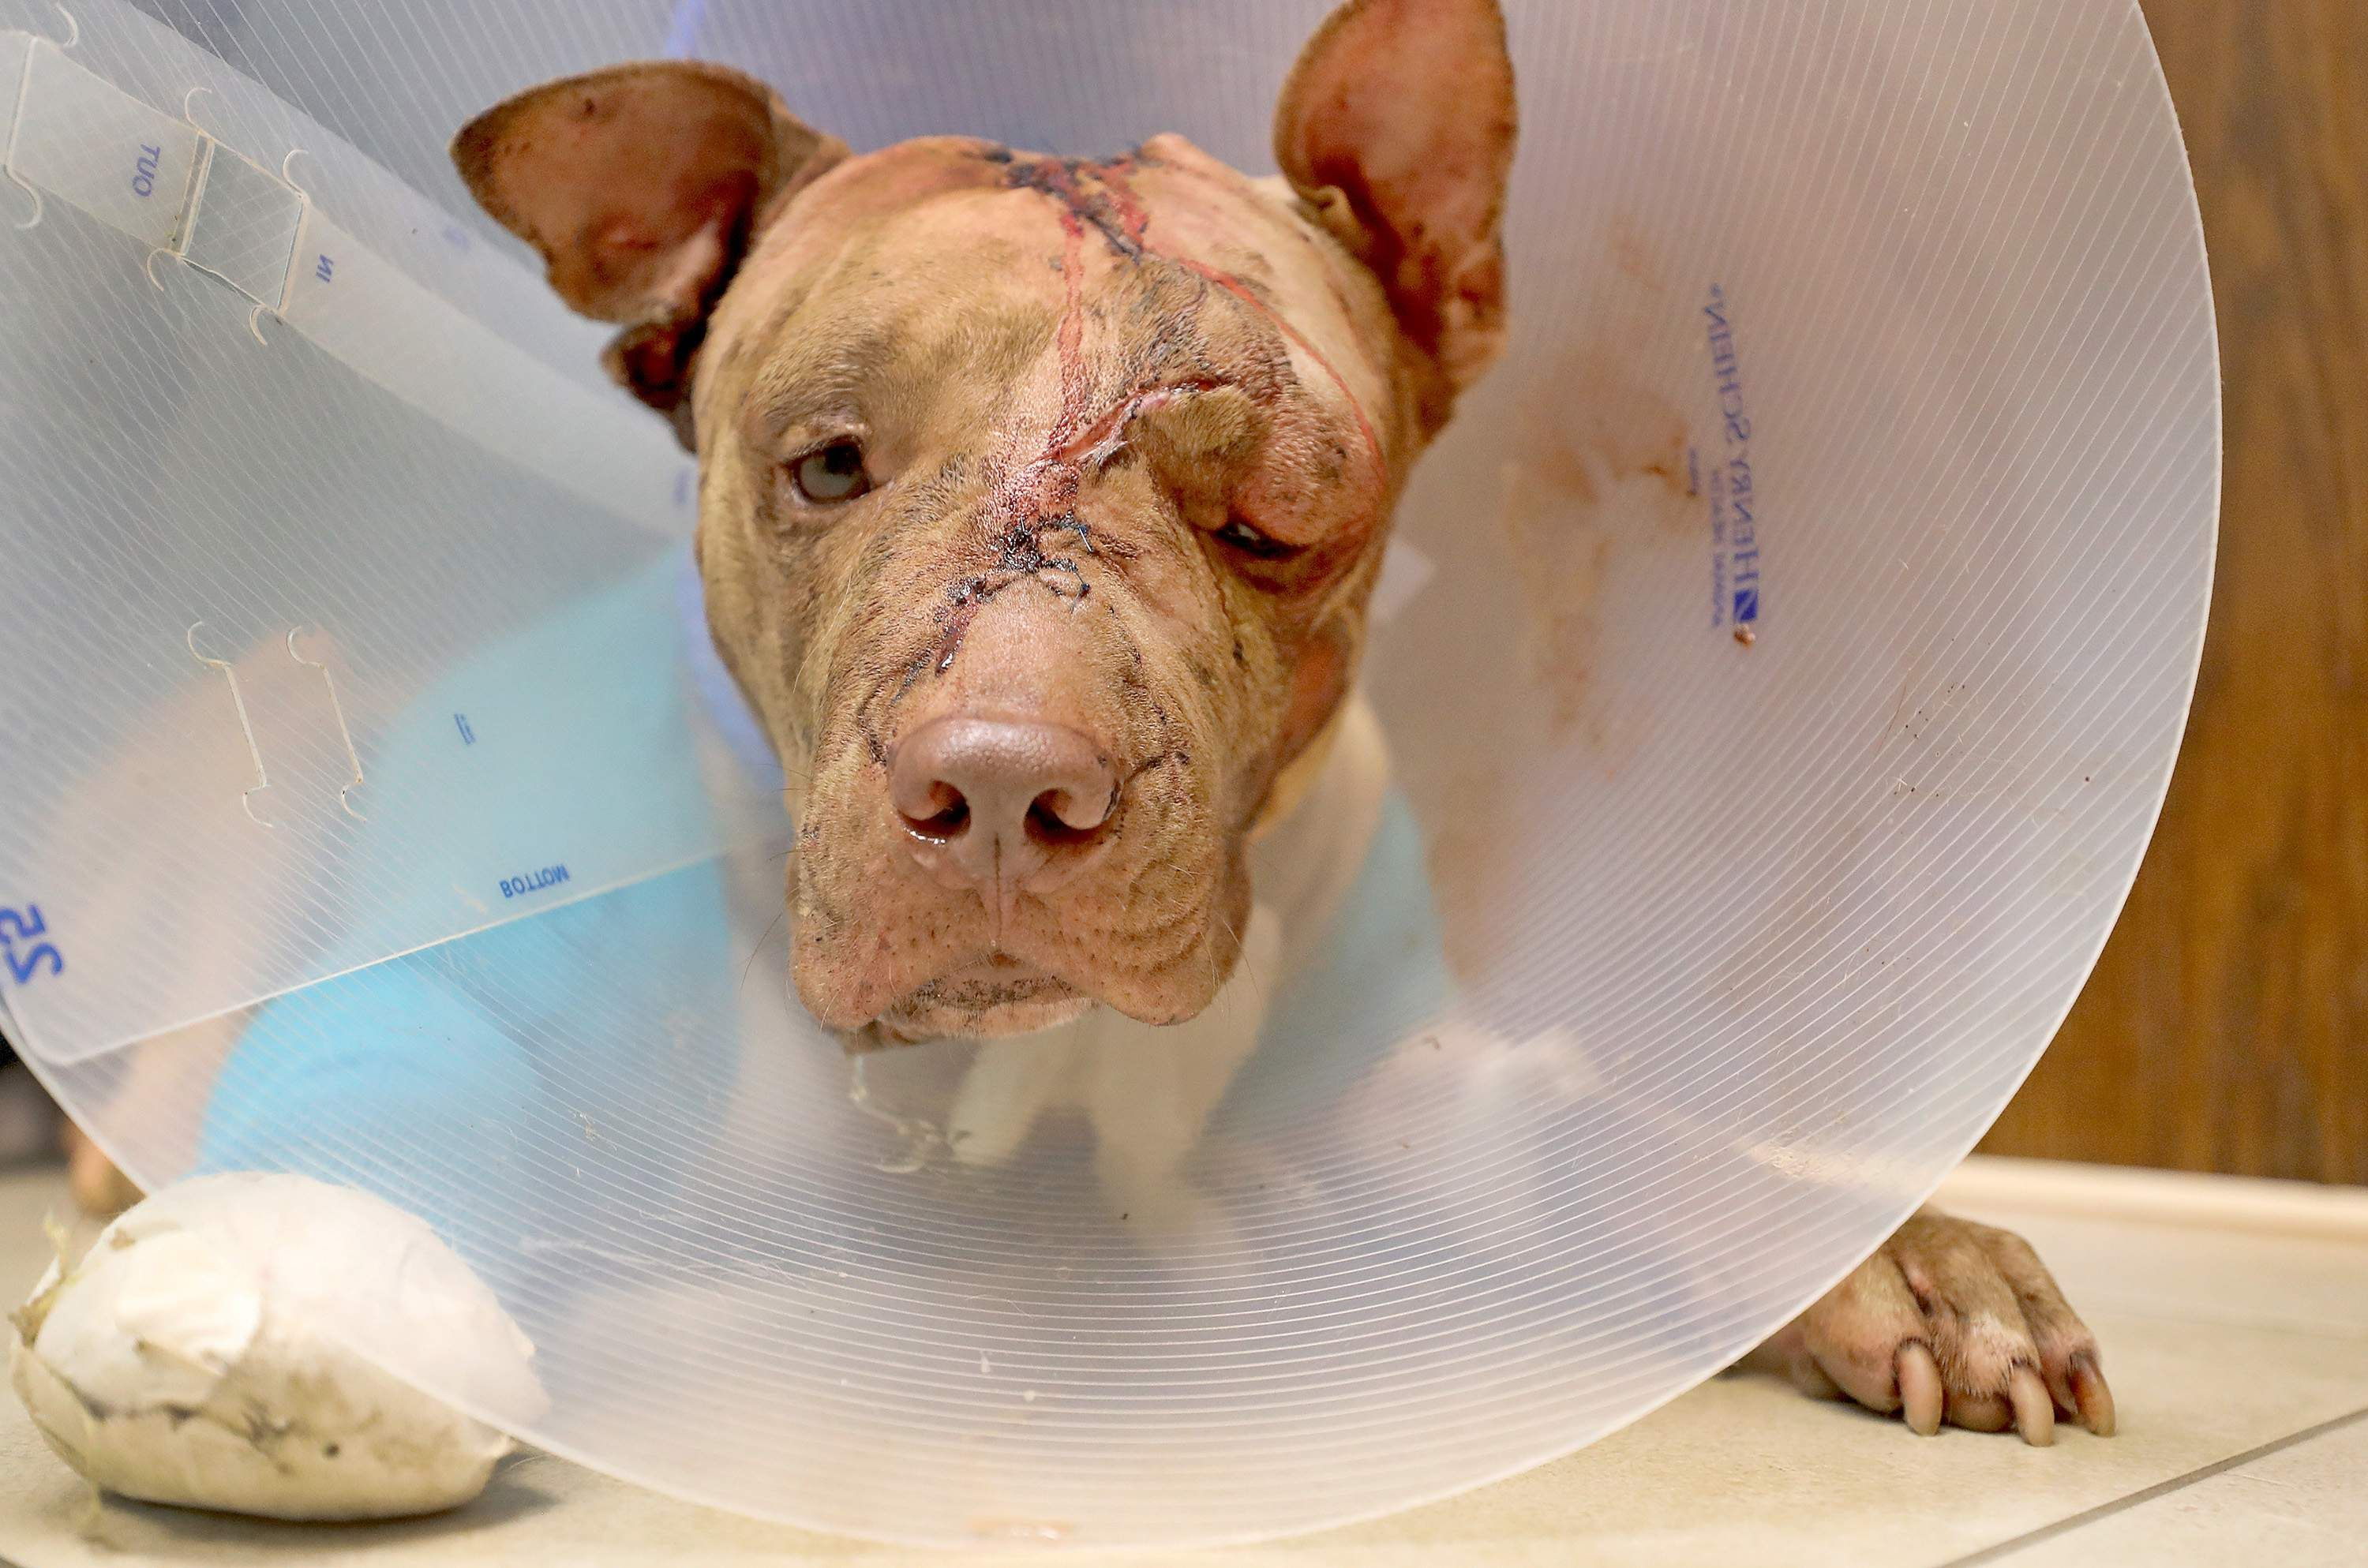 A brutally abused dog receives medical treatment. Learn how you can help protect animals at Lady Freethinker.